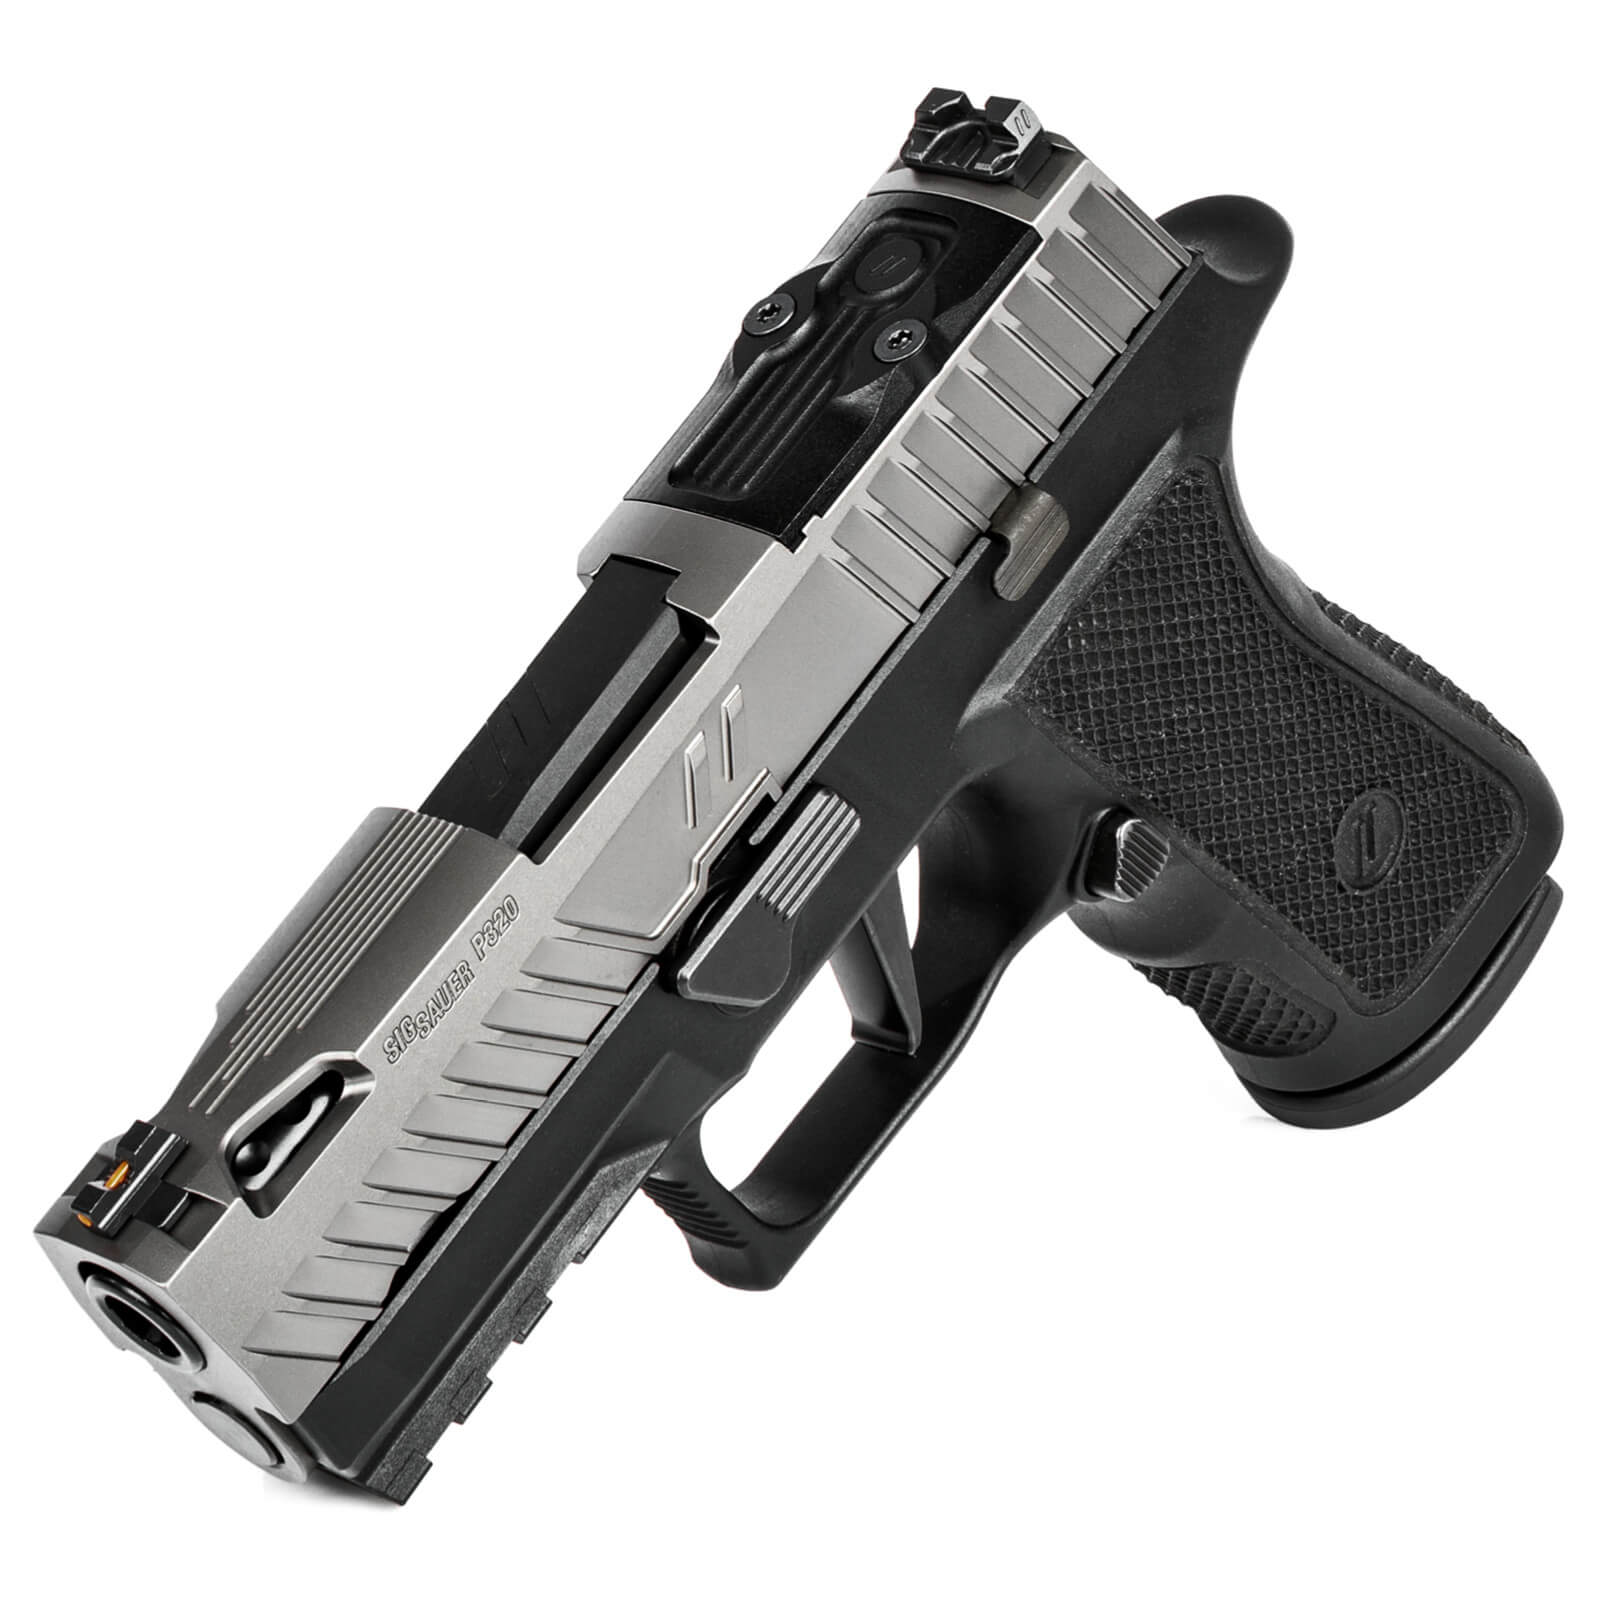 SIG Sauer and Zev Technologies Make it Offical: P320 Collaboration